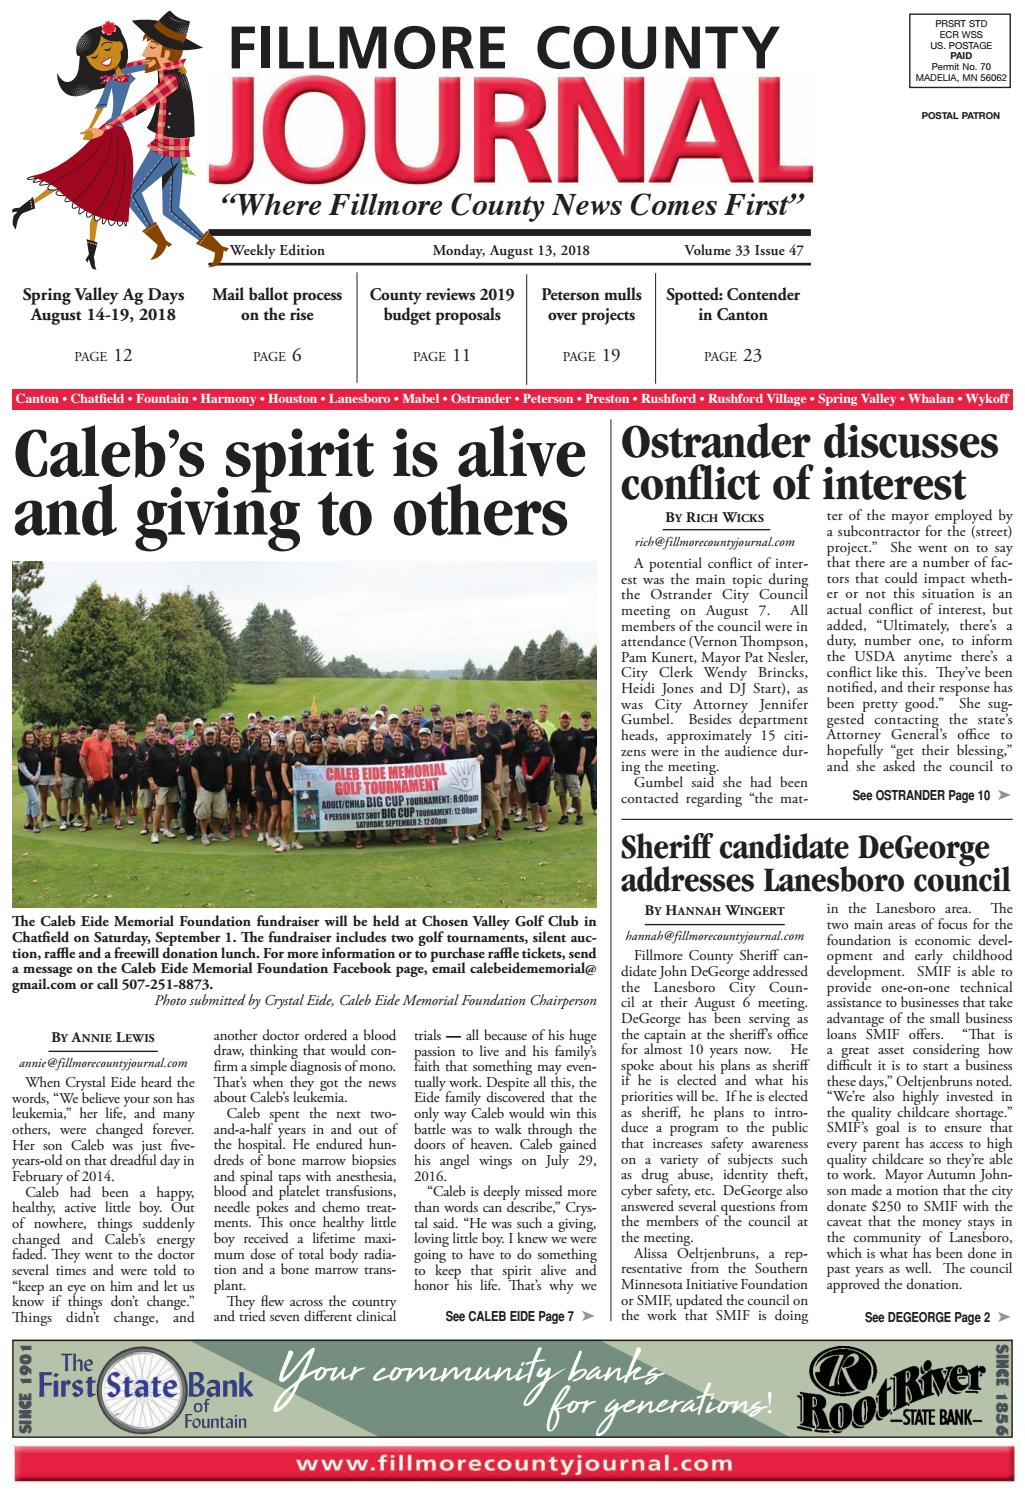 0e0cbccdcaf54 Fillmore County Journal - 8.13.18 by Jason Sethre - issuu